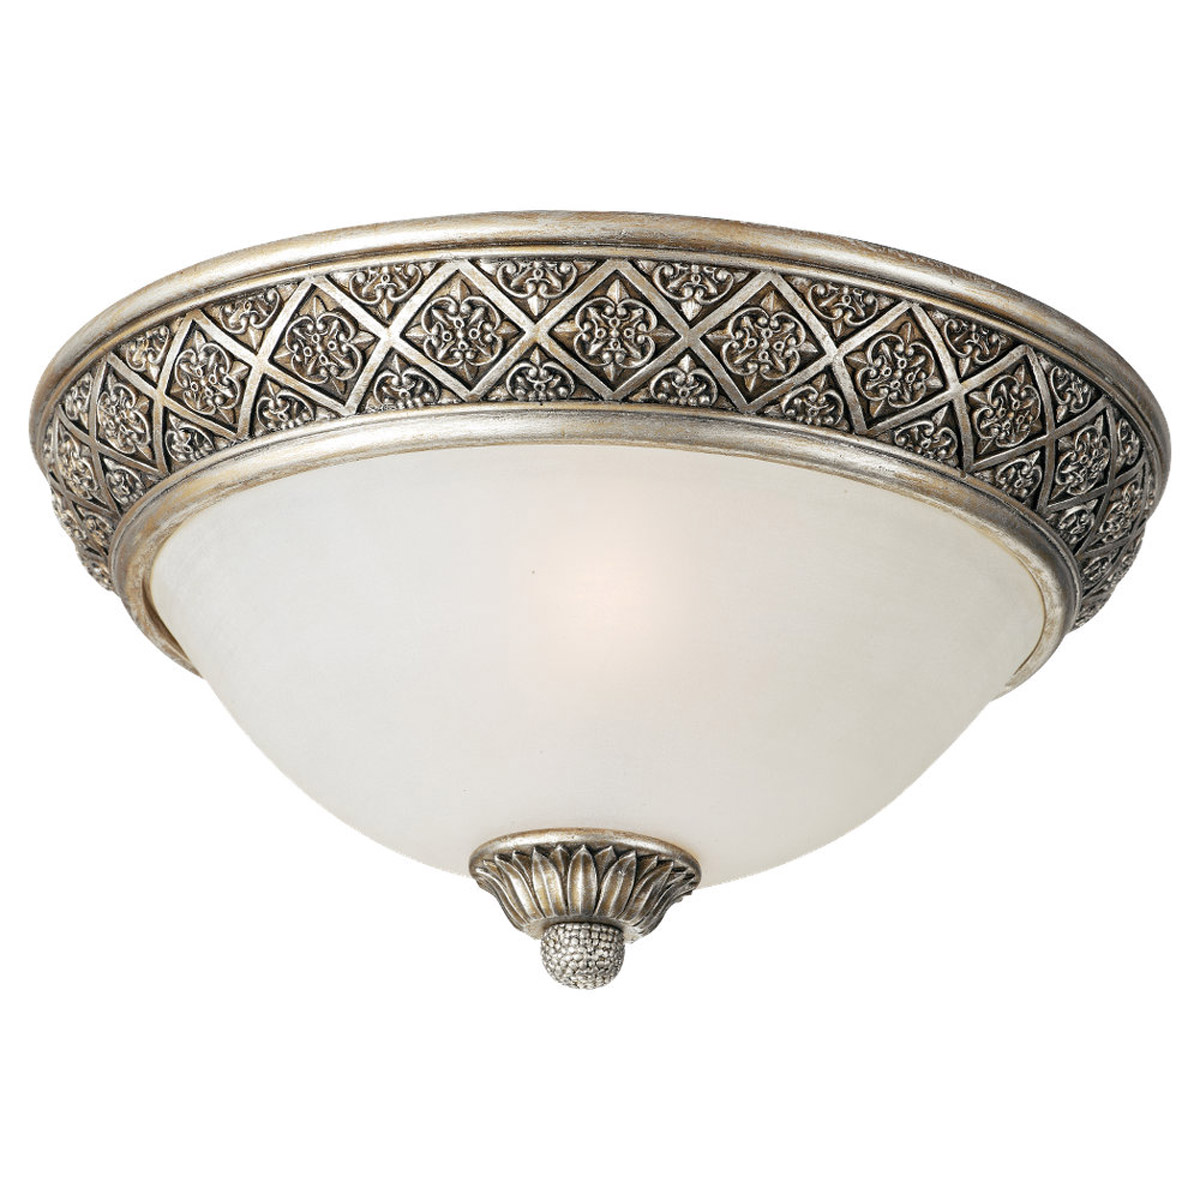 Sea Gull Lighting Highlands 2 Light Flush Mount in Palladium 75250-824 photo